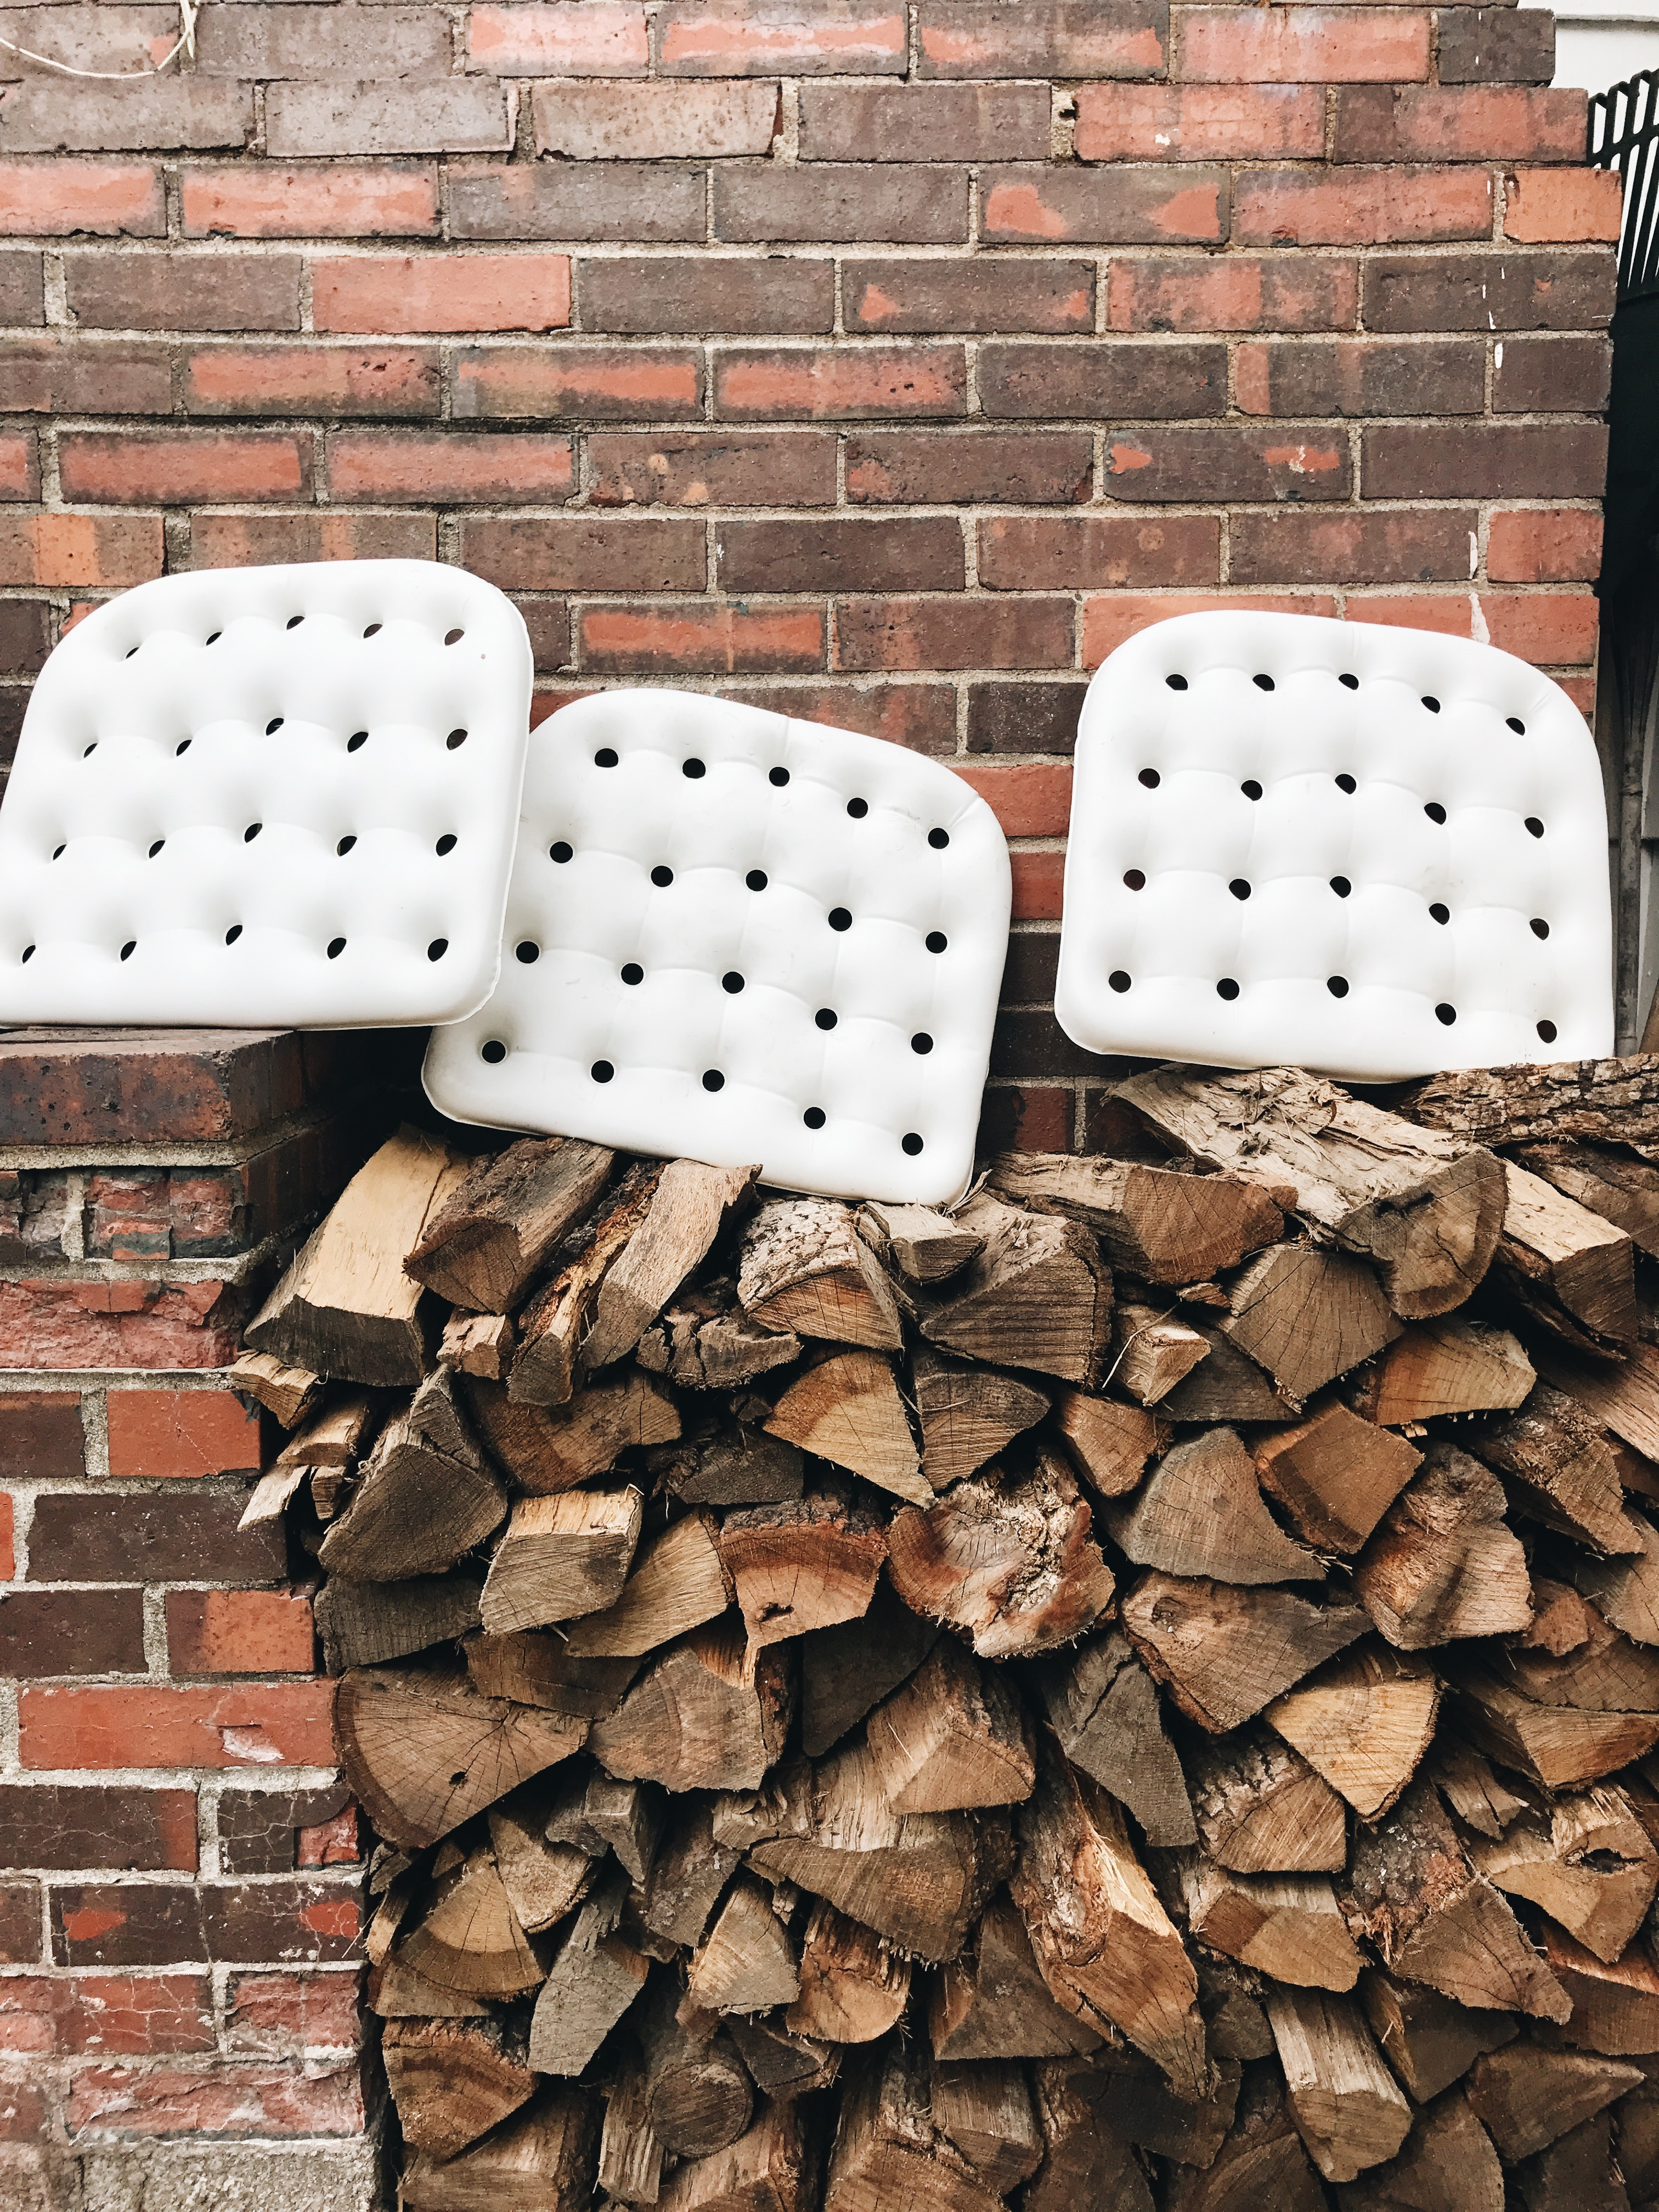 Firewood and seat cushions